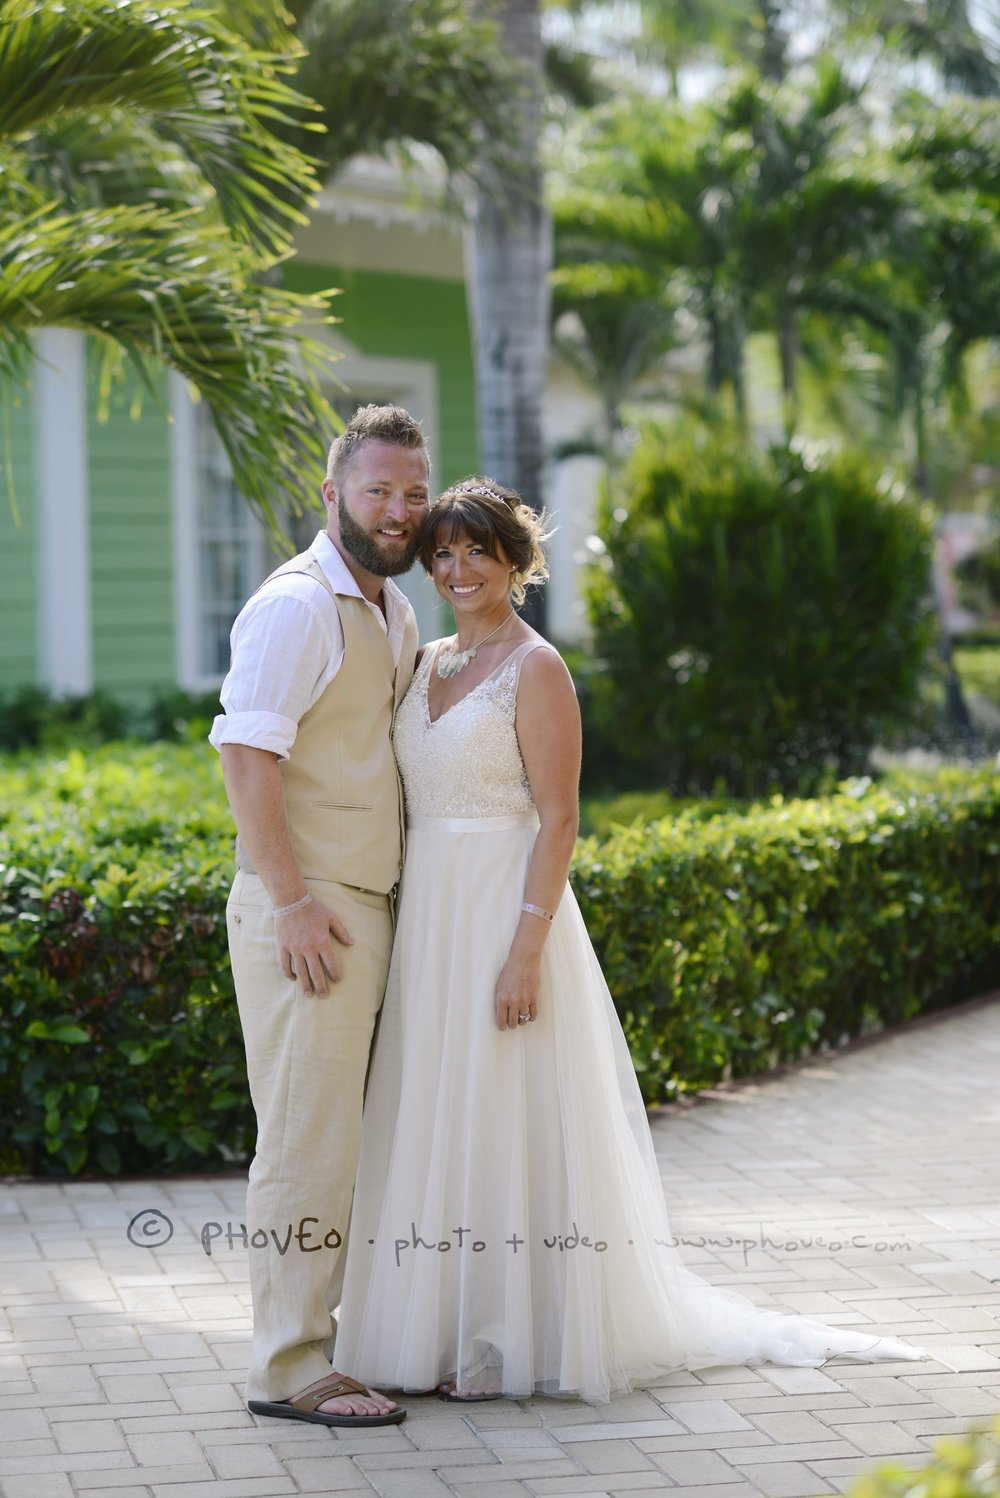 WM_20160923_Alicia+Sean_40.jpg